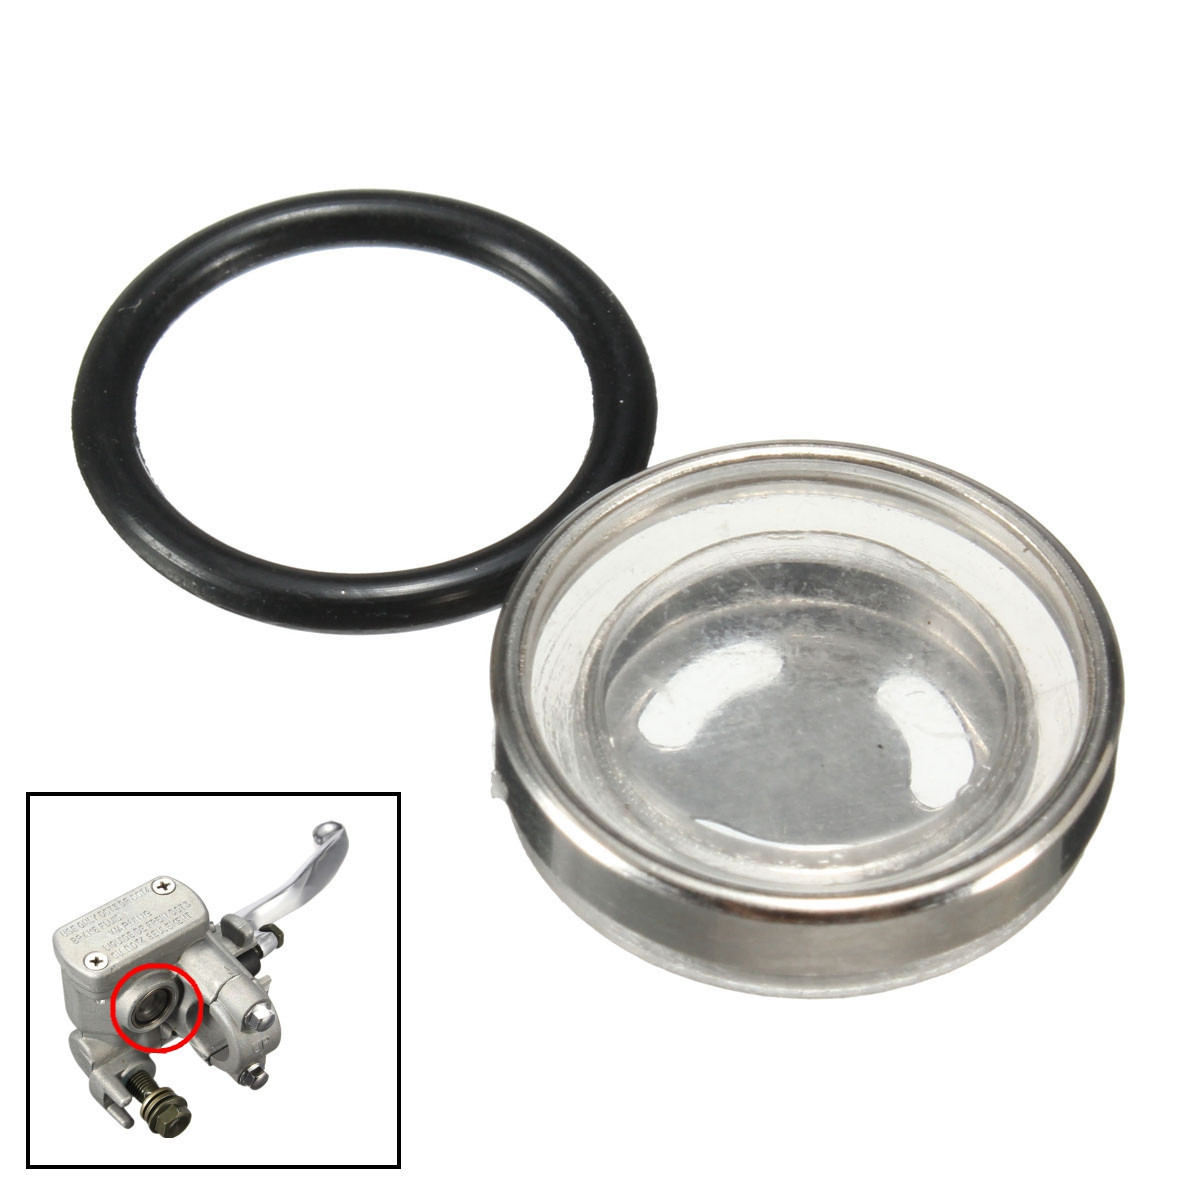 2pcs 18mm Motorcycle Master Brake Cylinder Reservoir Sight Glass with Rubber Gasket for Motorbike Brake Clutch Levers(China)